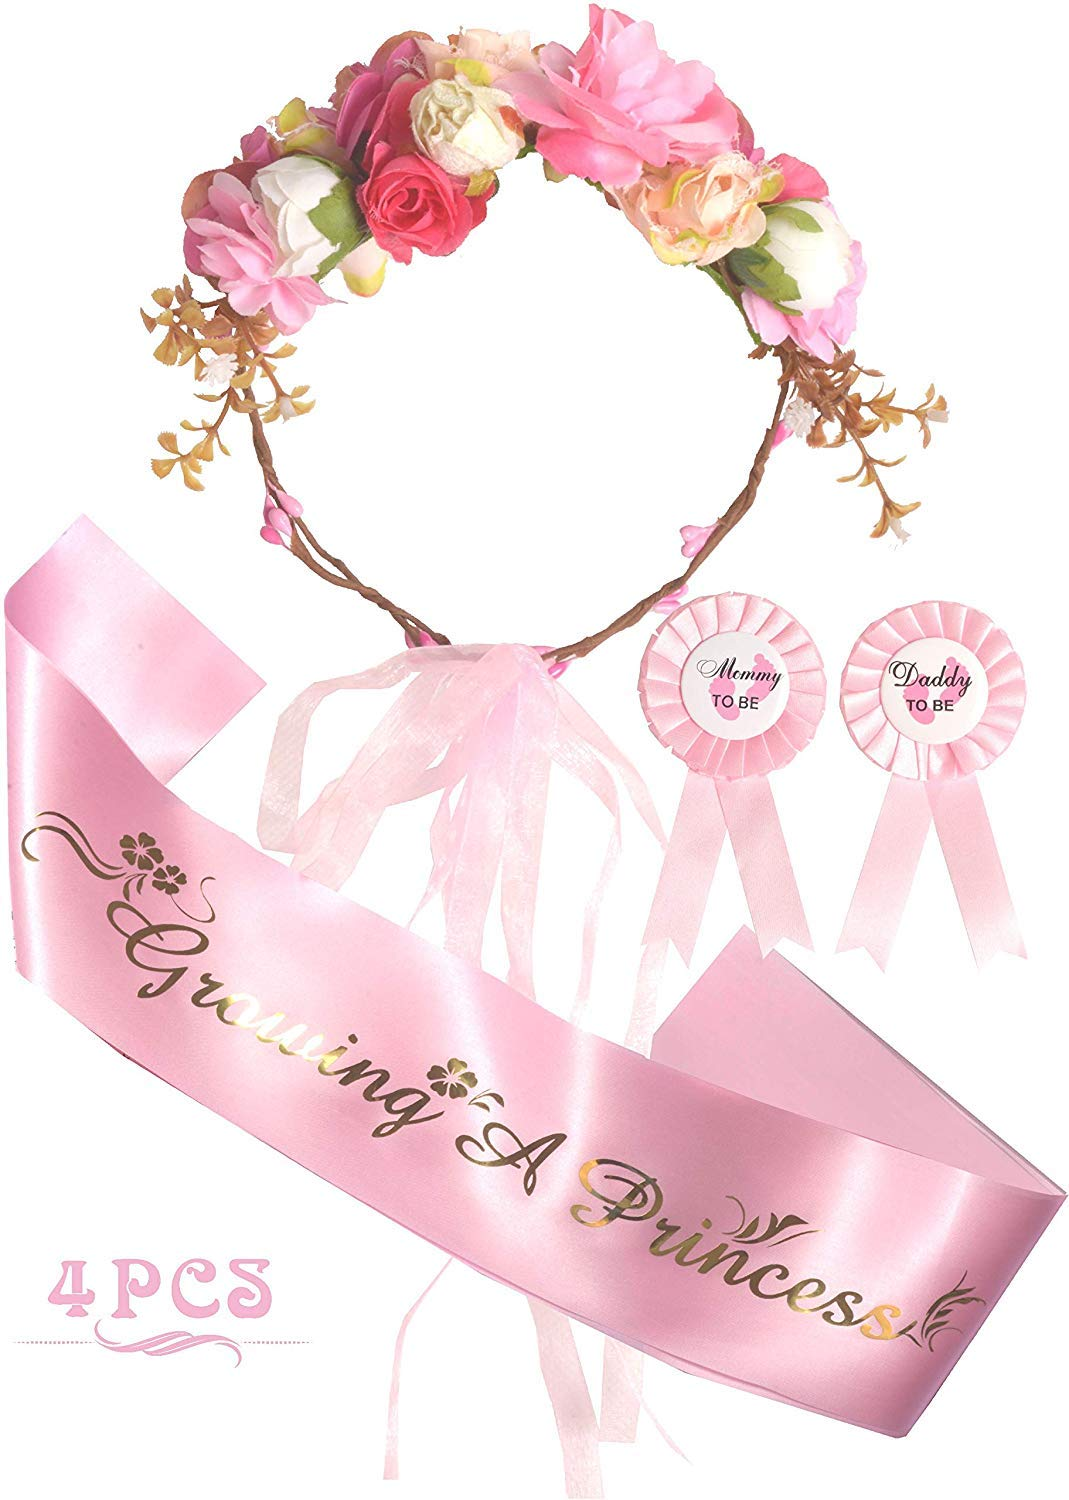 Mother To Be Flower Crown Pink Set, Growing a Princess Sash and Mommy to be Pin, Dad To Be Pin, Pink Baby Shower Party Favors Decorations Gift for Girl (flower crown)